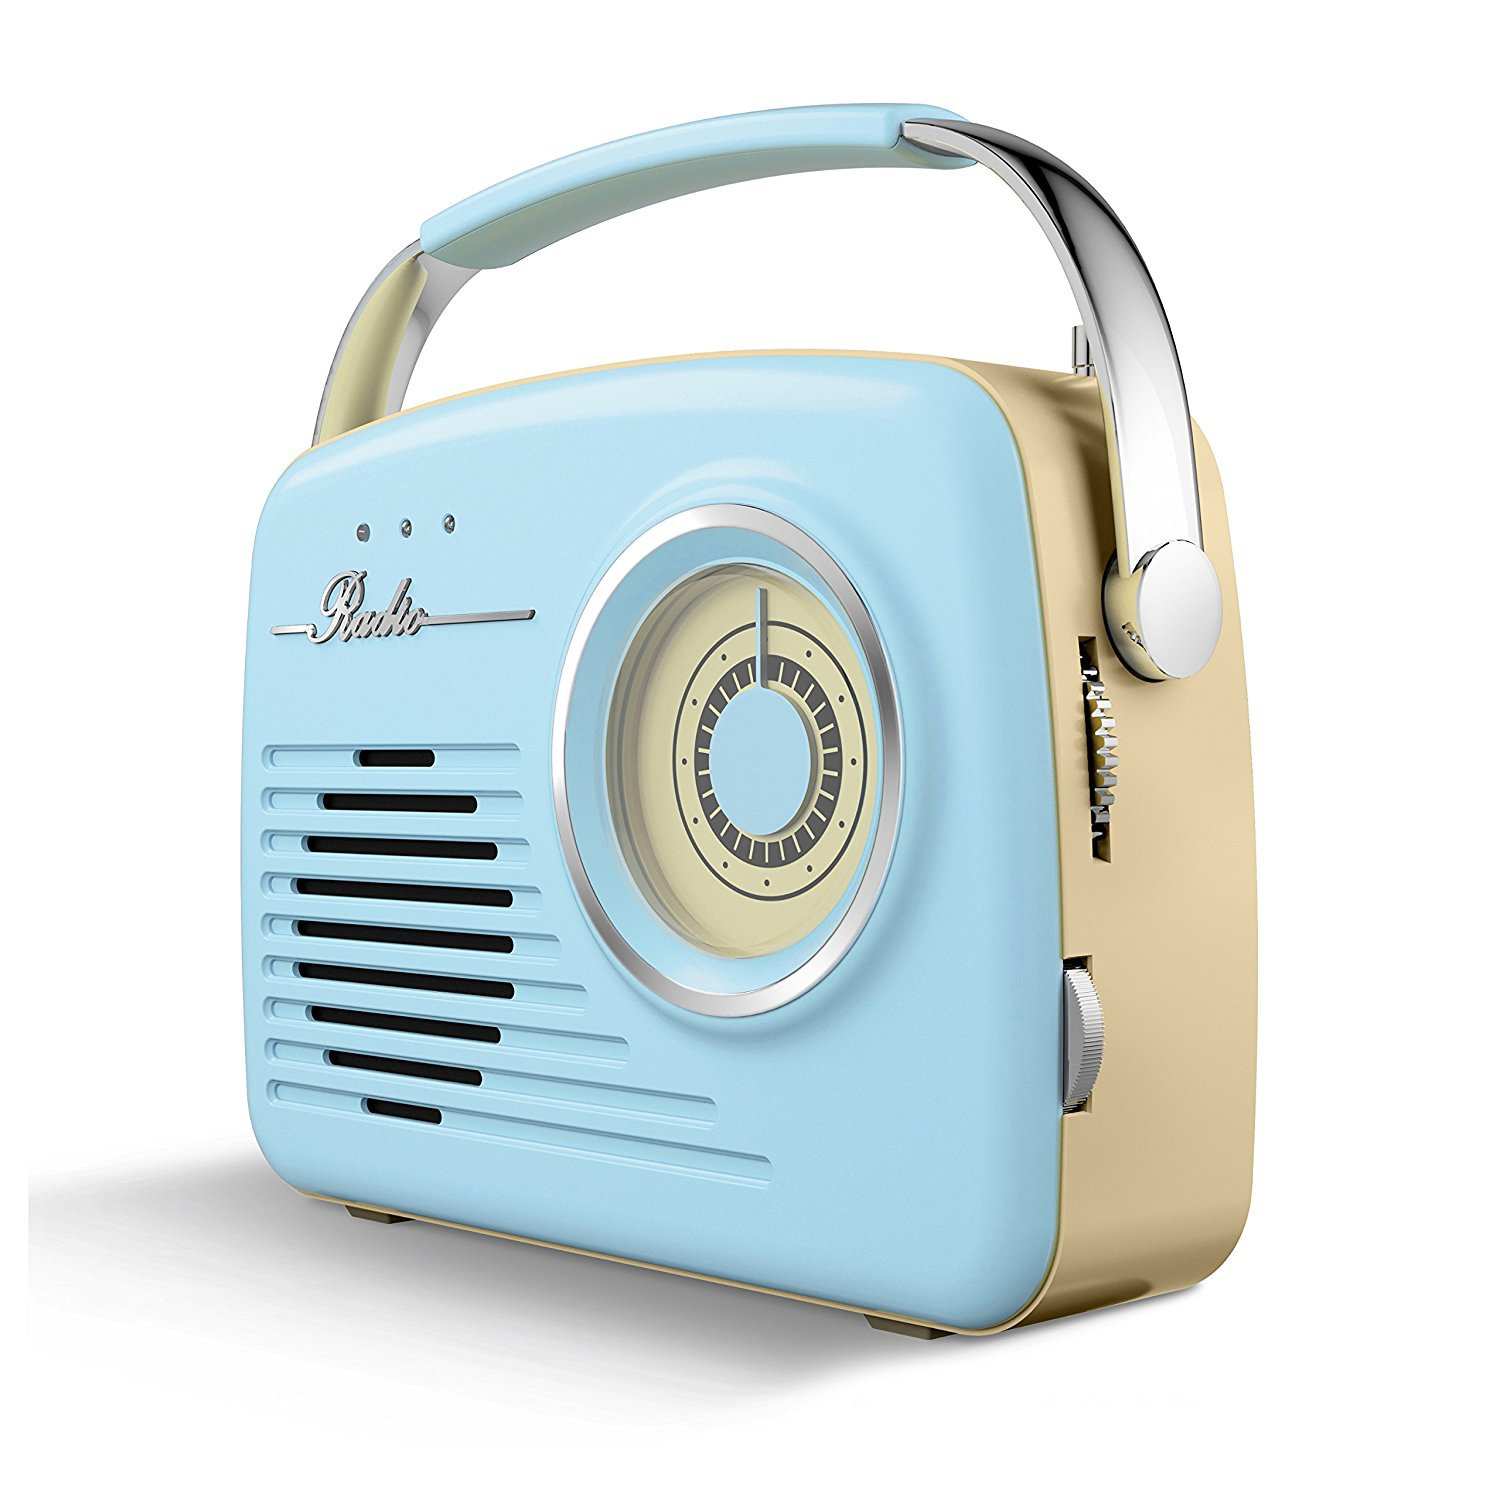 Akai Am Fm Retro Radio Blue At Barnitts Online Store Uk